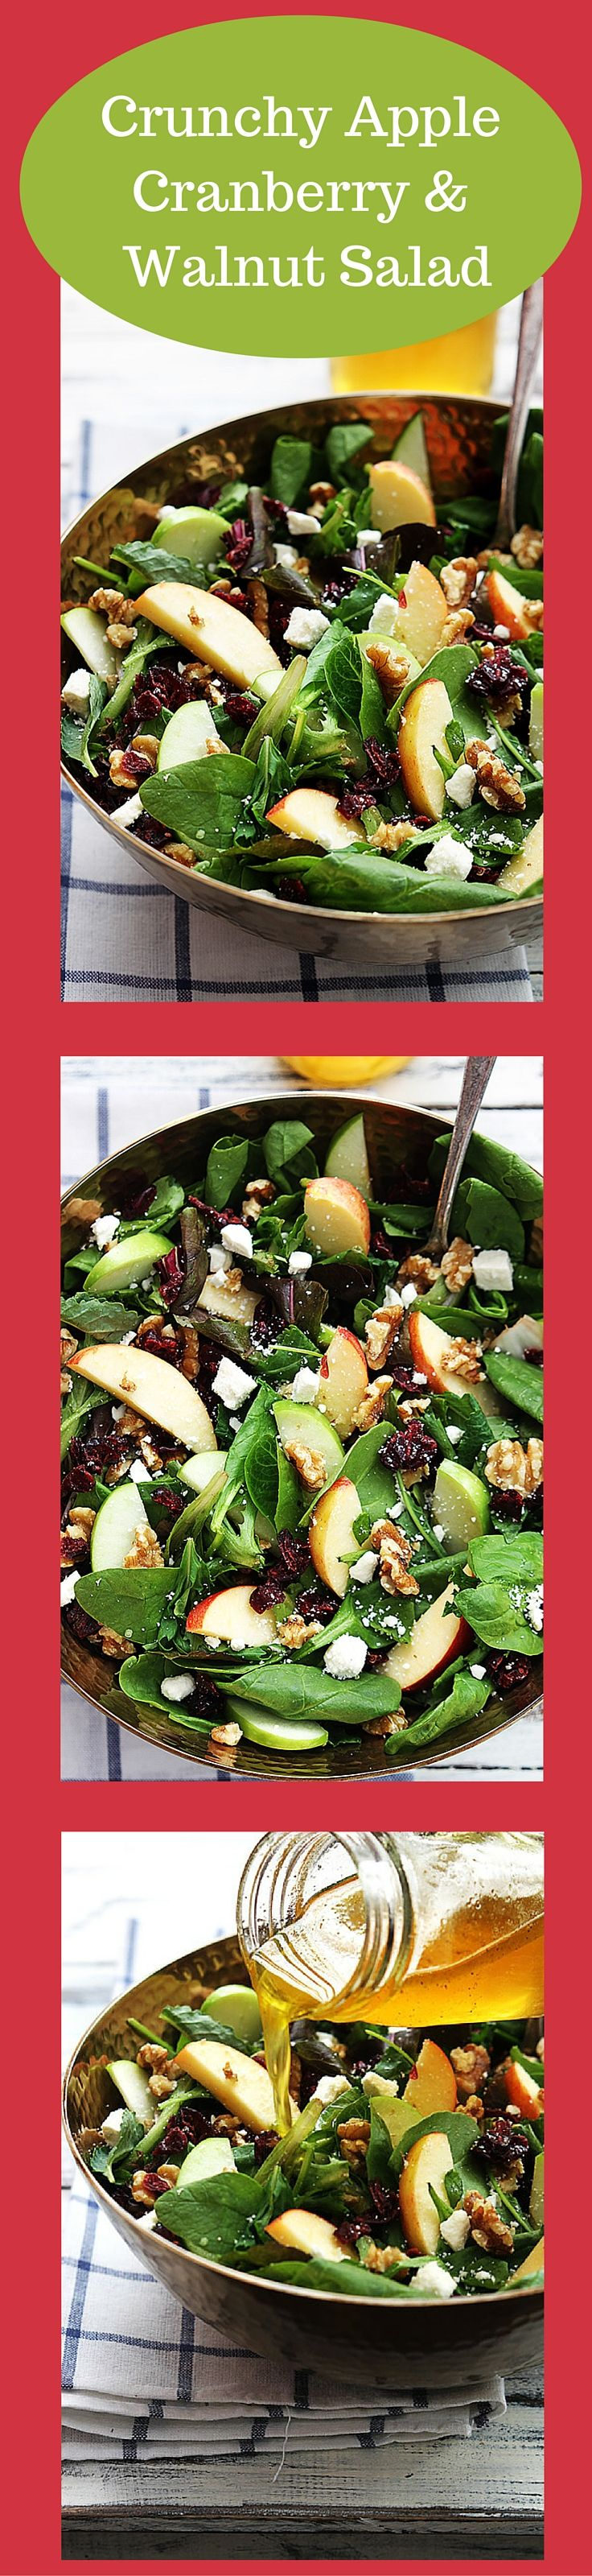 This crunchy apple cranberry and walnut salad recipe is perfect for Fall!